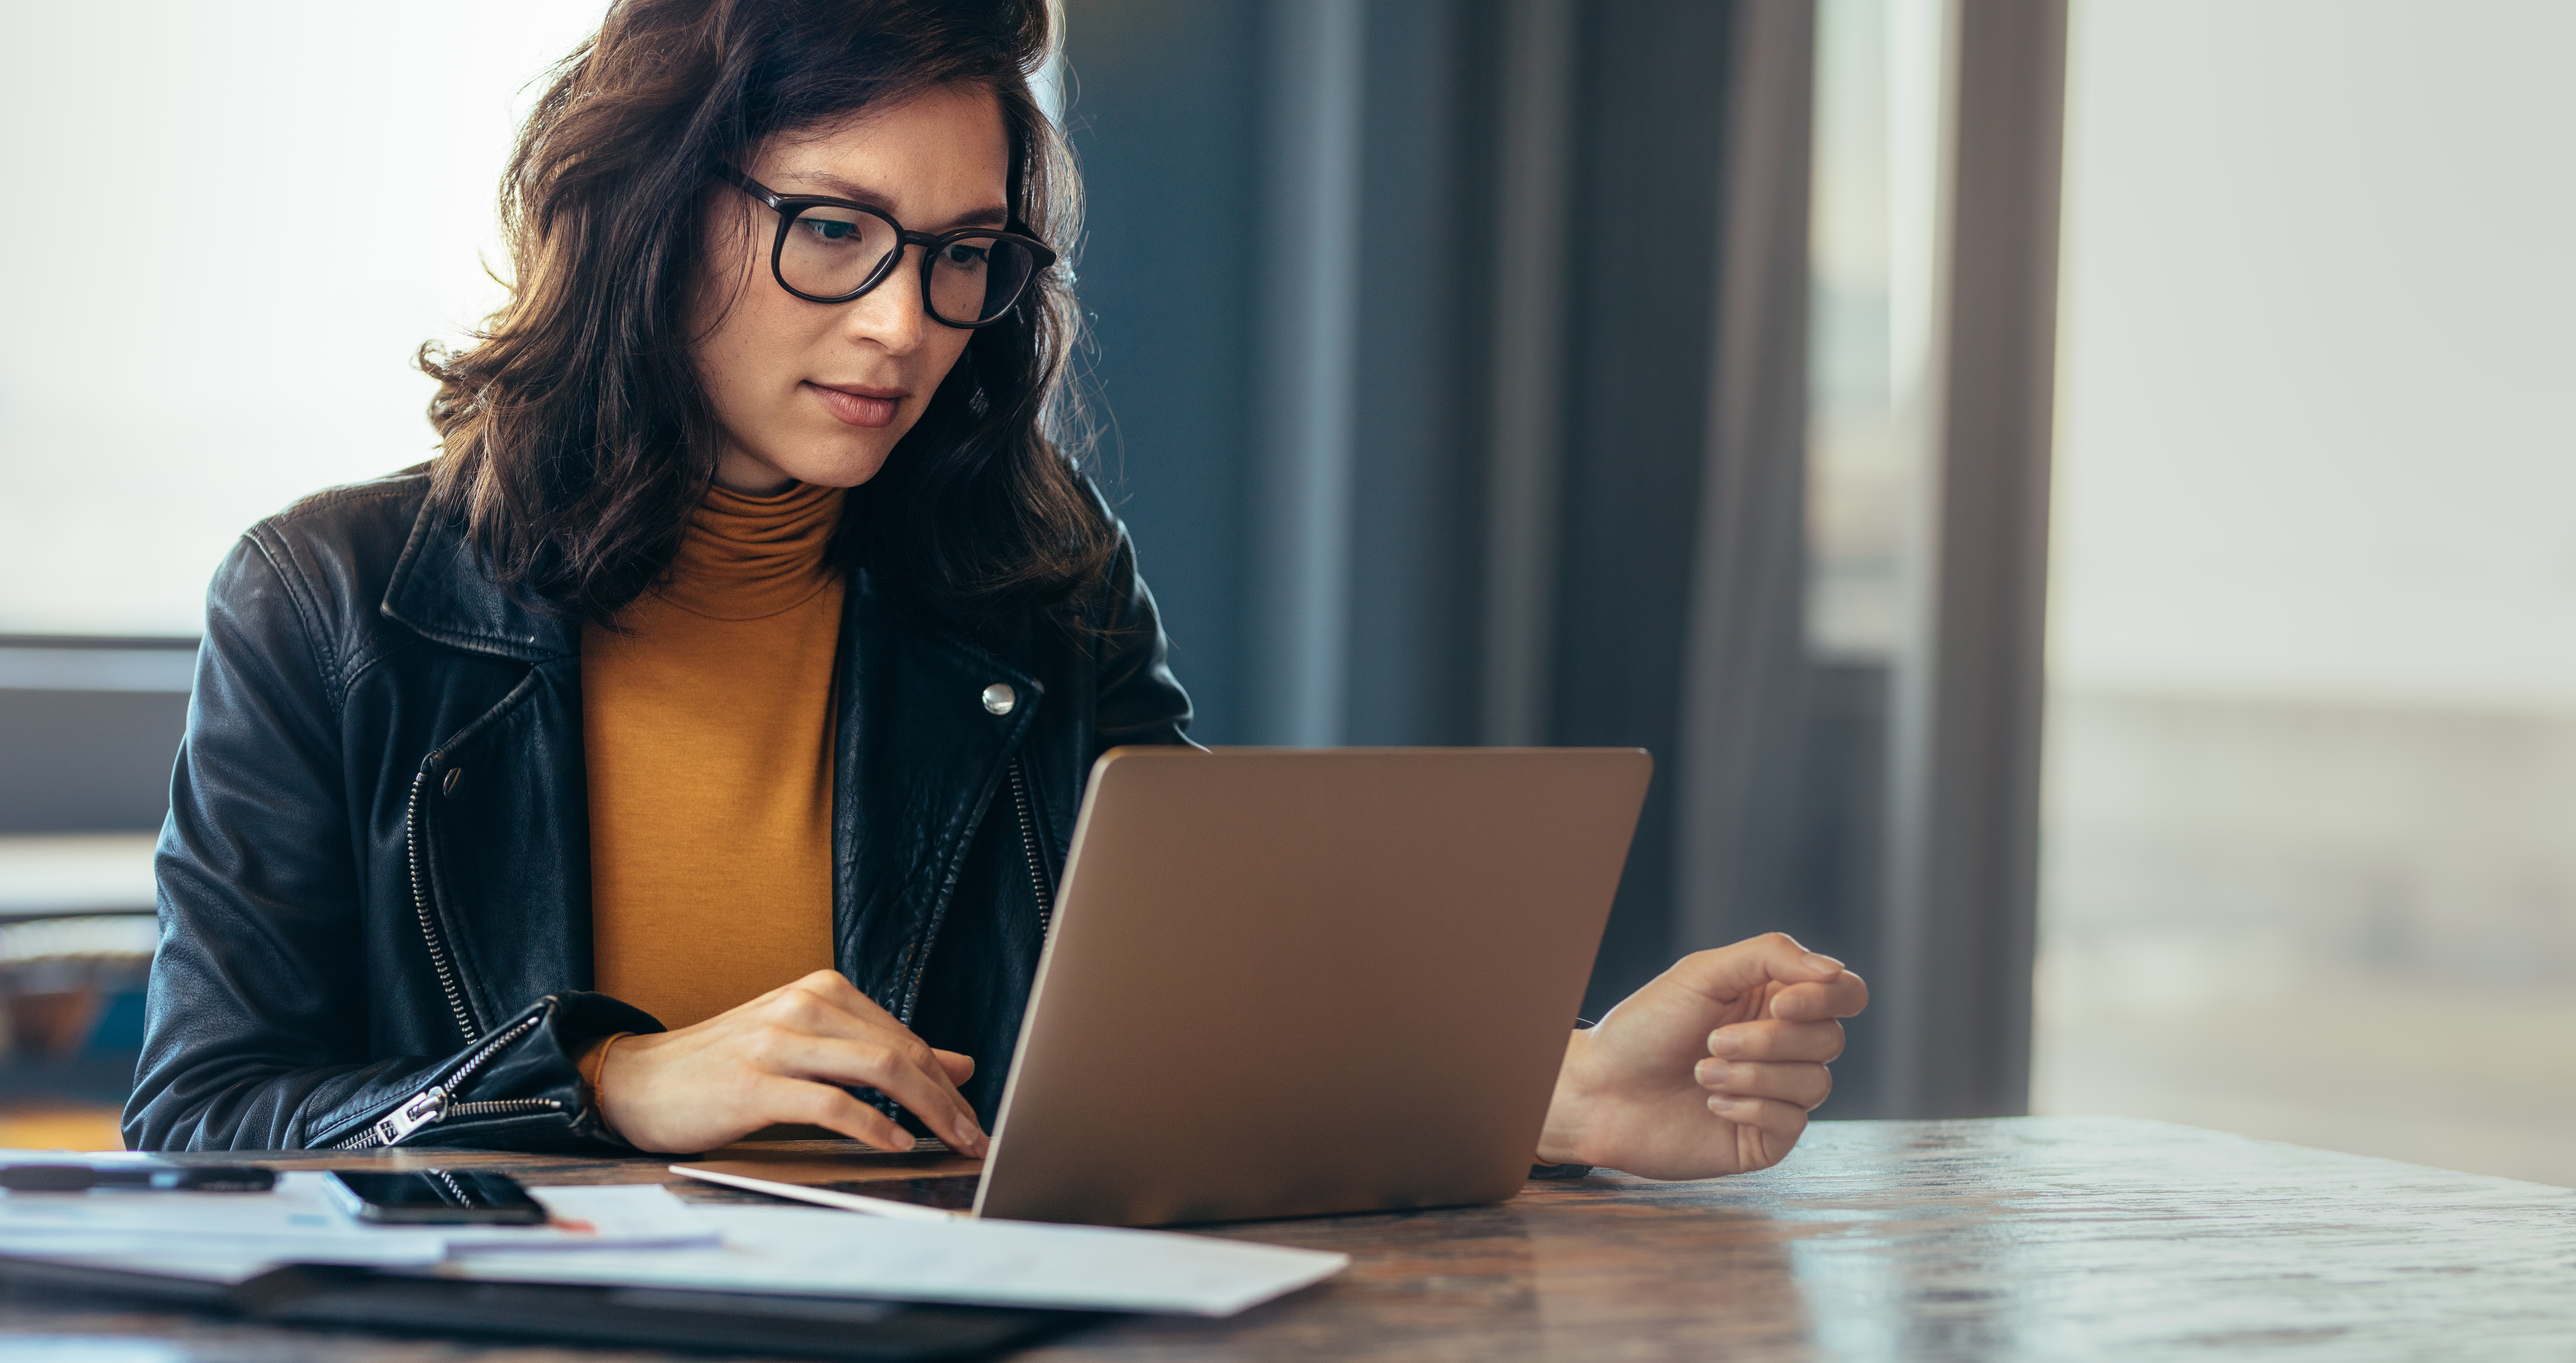 Asian woman working laptop at office